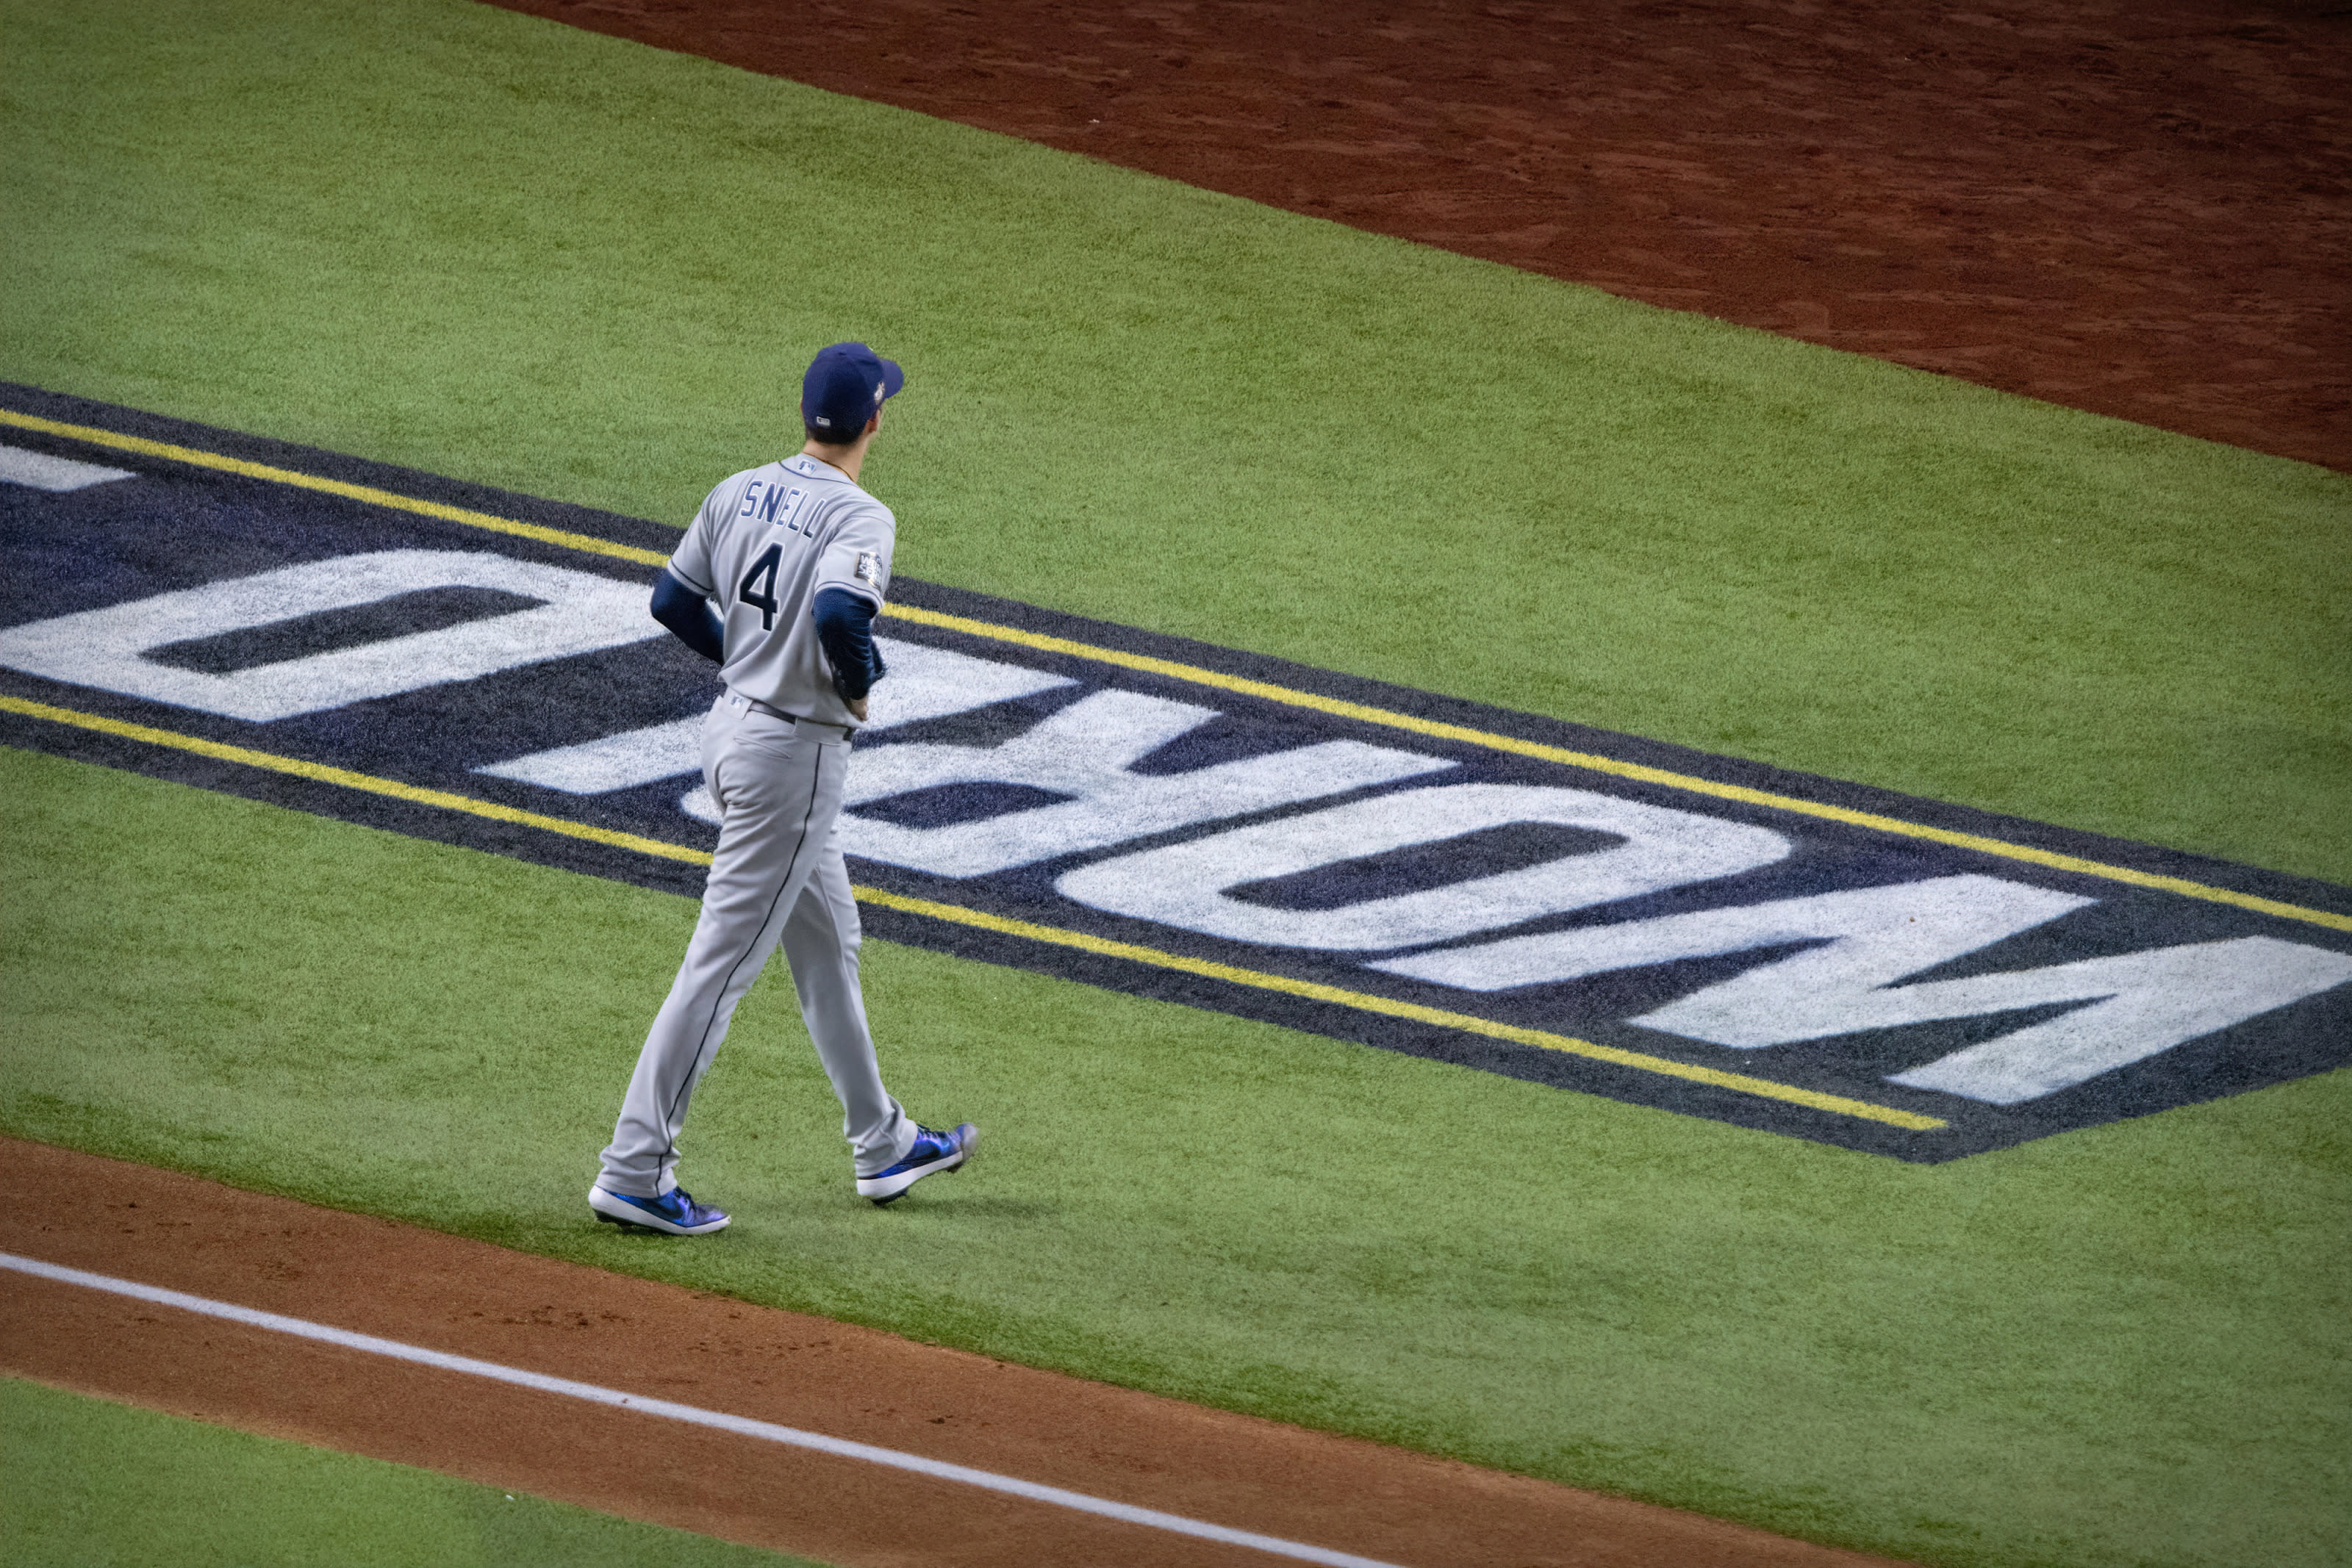 Tampa Bay Rays starting pitcher Blake Snell walks off the field